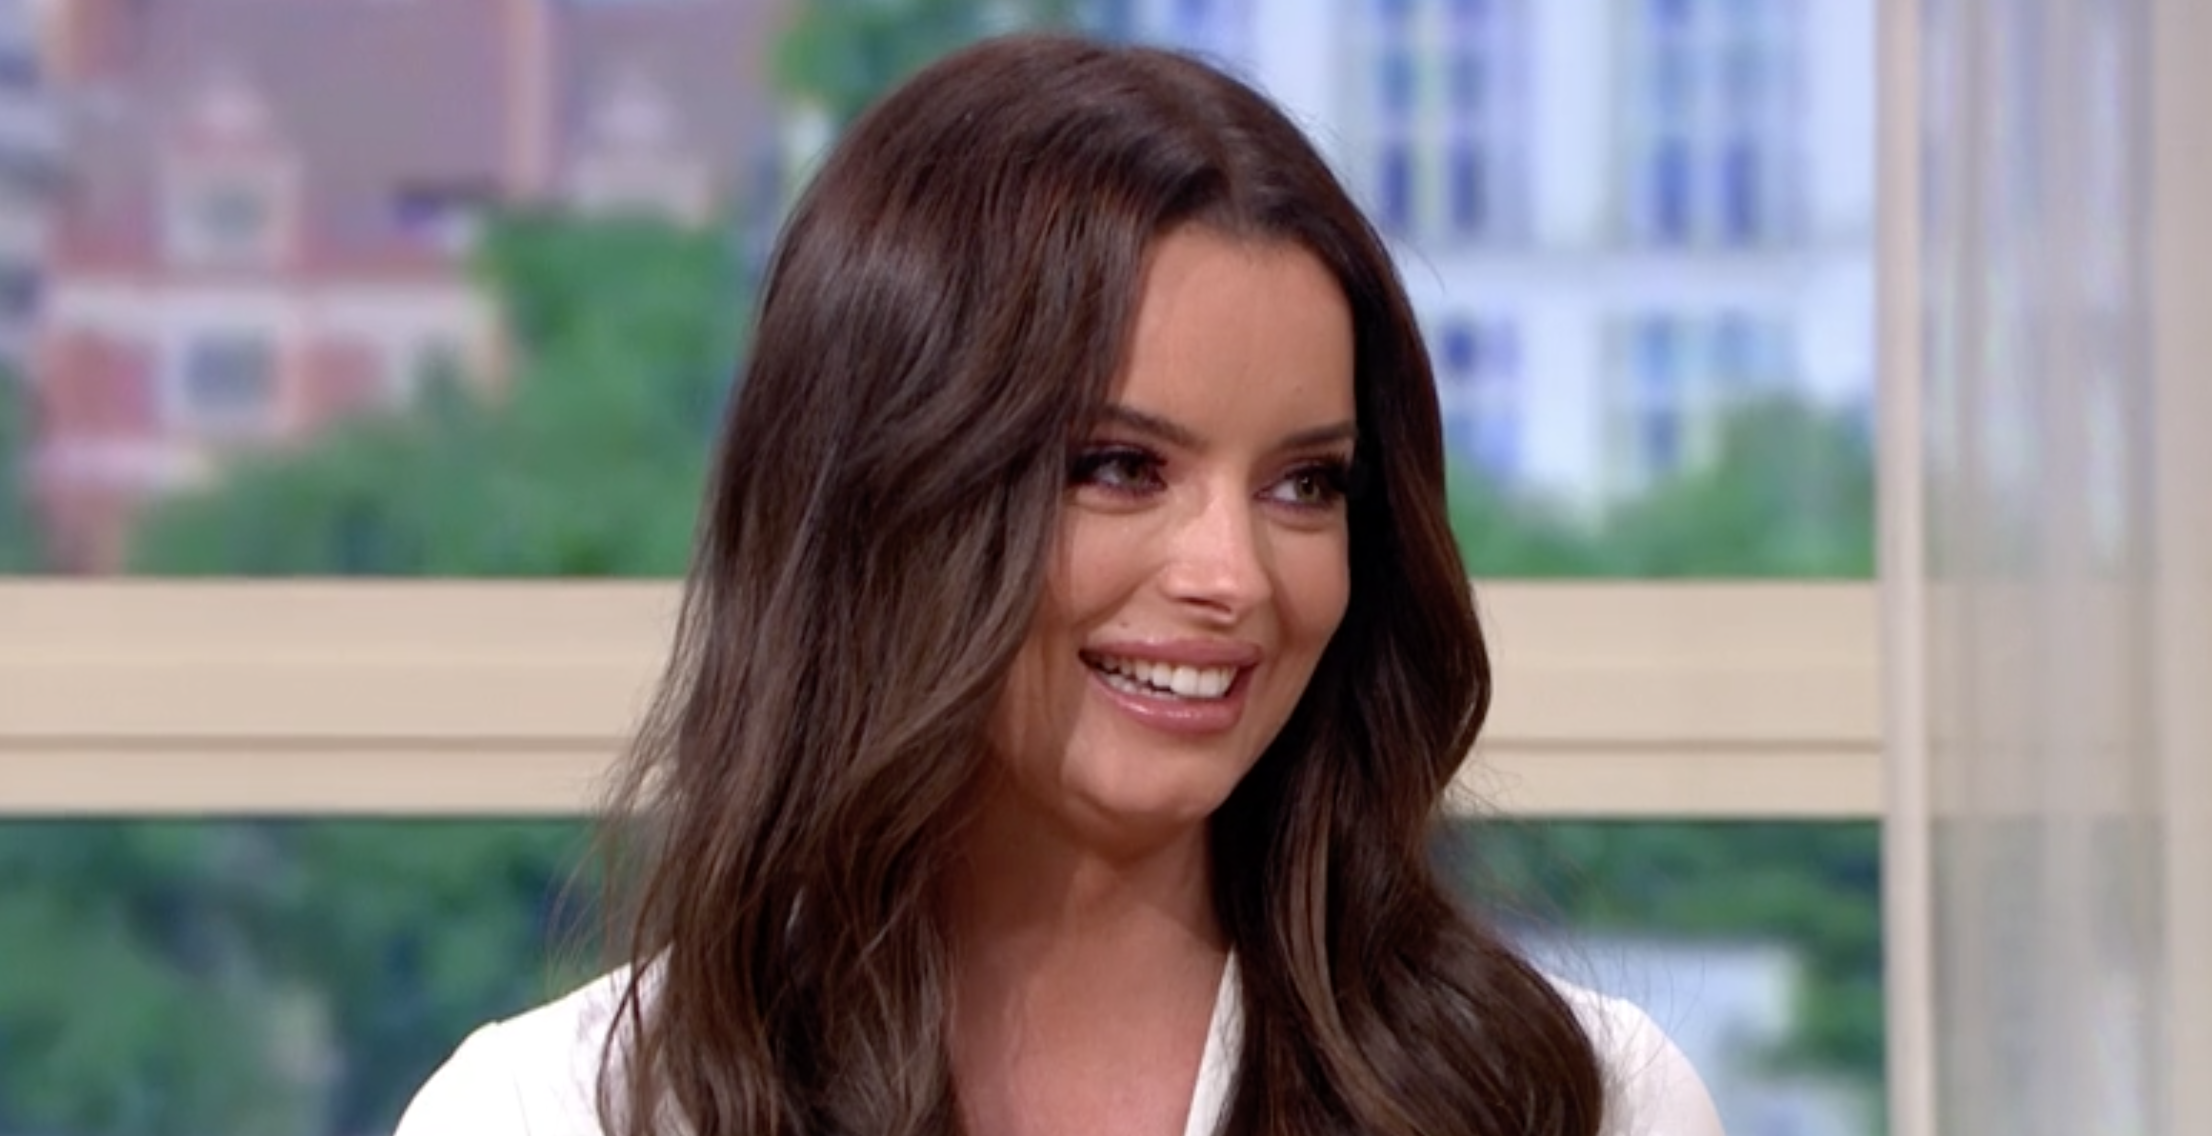 Love Island's Maura divides This Morning viewers as she makes debut